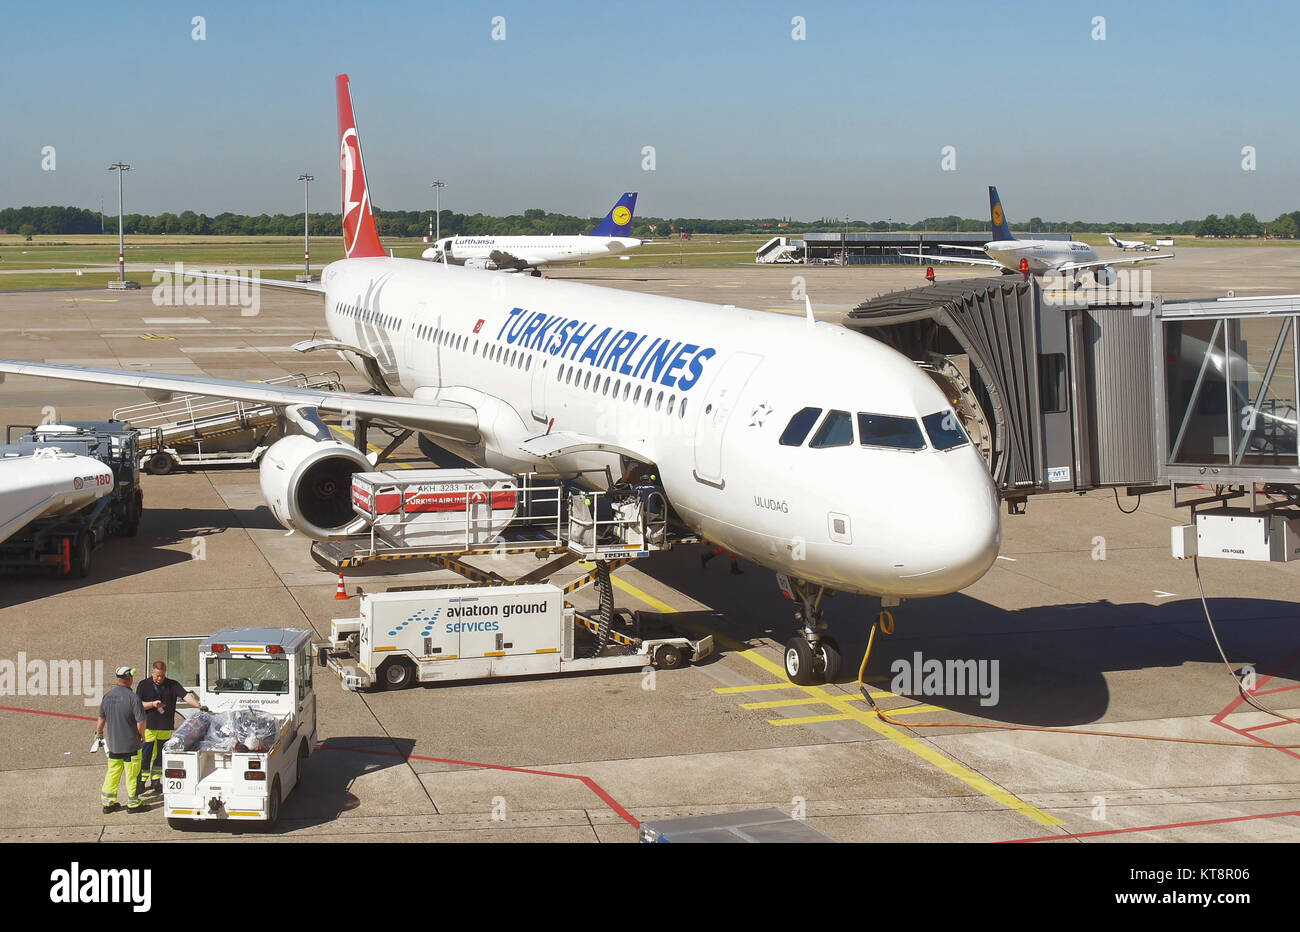 Hanover, Lower Saxony, Germany, July 1st 2015: Hanover Airport with Turkish aircraft while loading for the flight - Stock Image